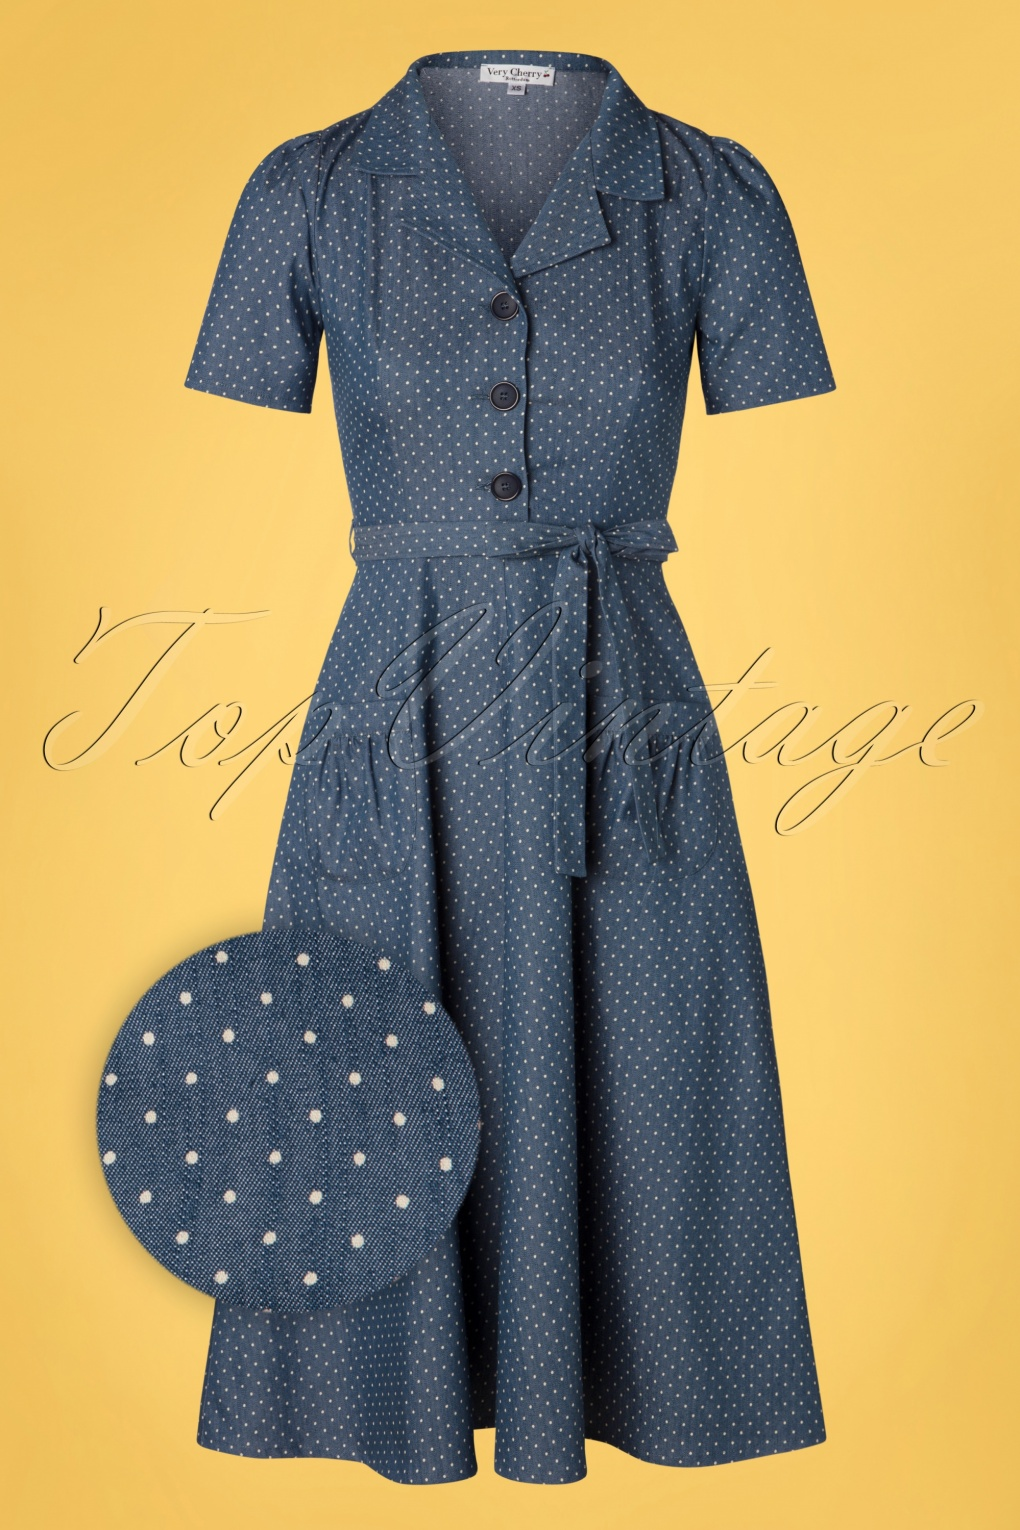 500 Vintage Style Dresses for Sale | Vintage Inspired Dresses 40s Revers Midi Dots Dress in Light Denim Blue £119.97 AT vintagedancer.com